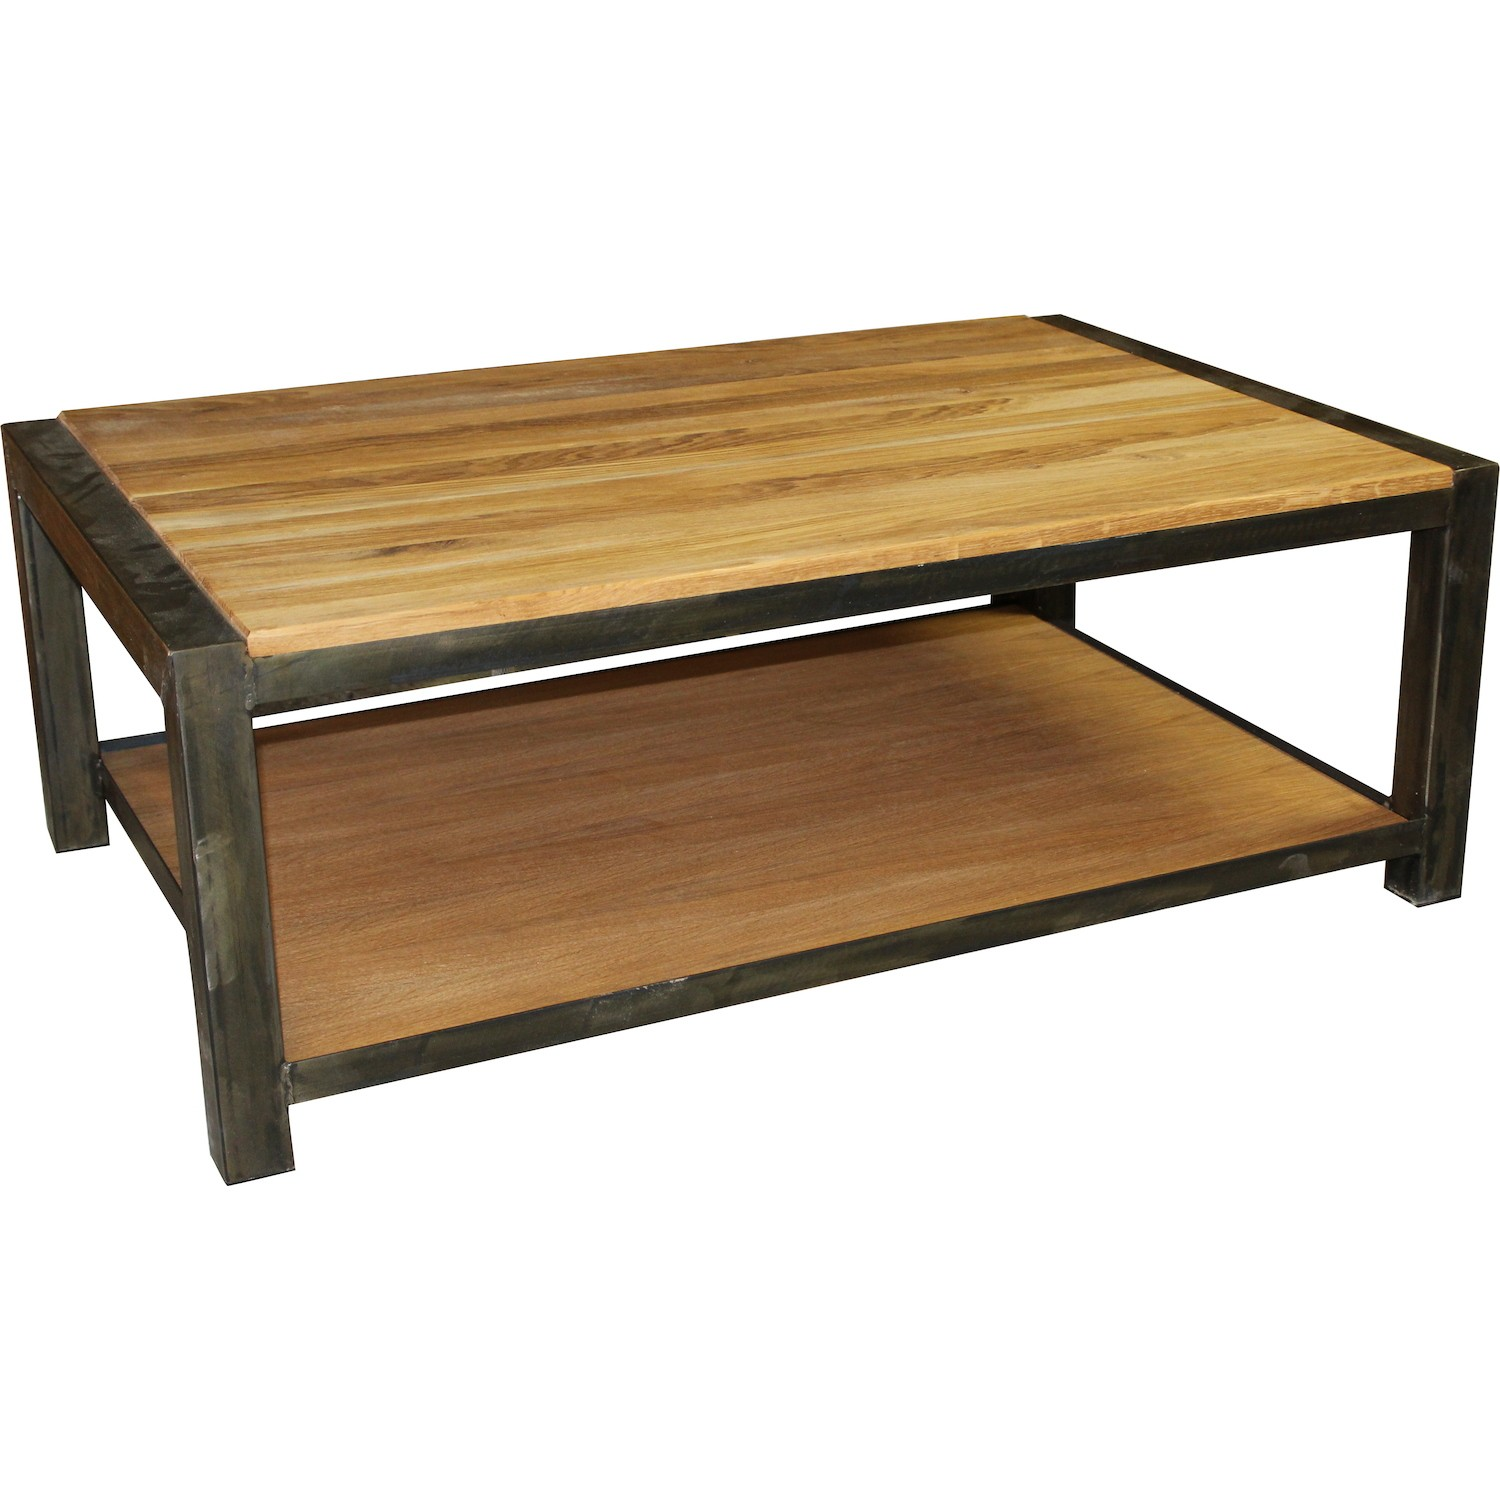 Table basse double plateau spirit for Table basse double plateau